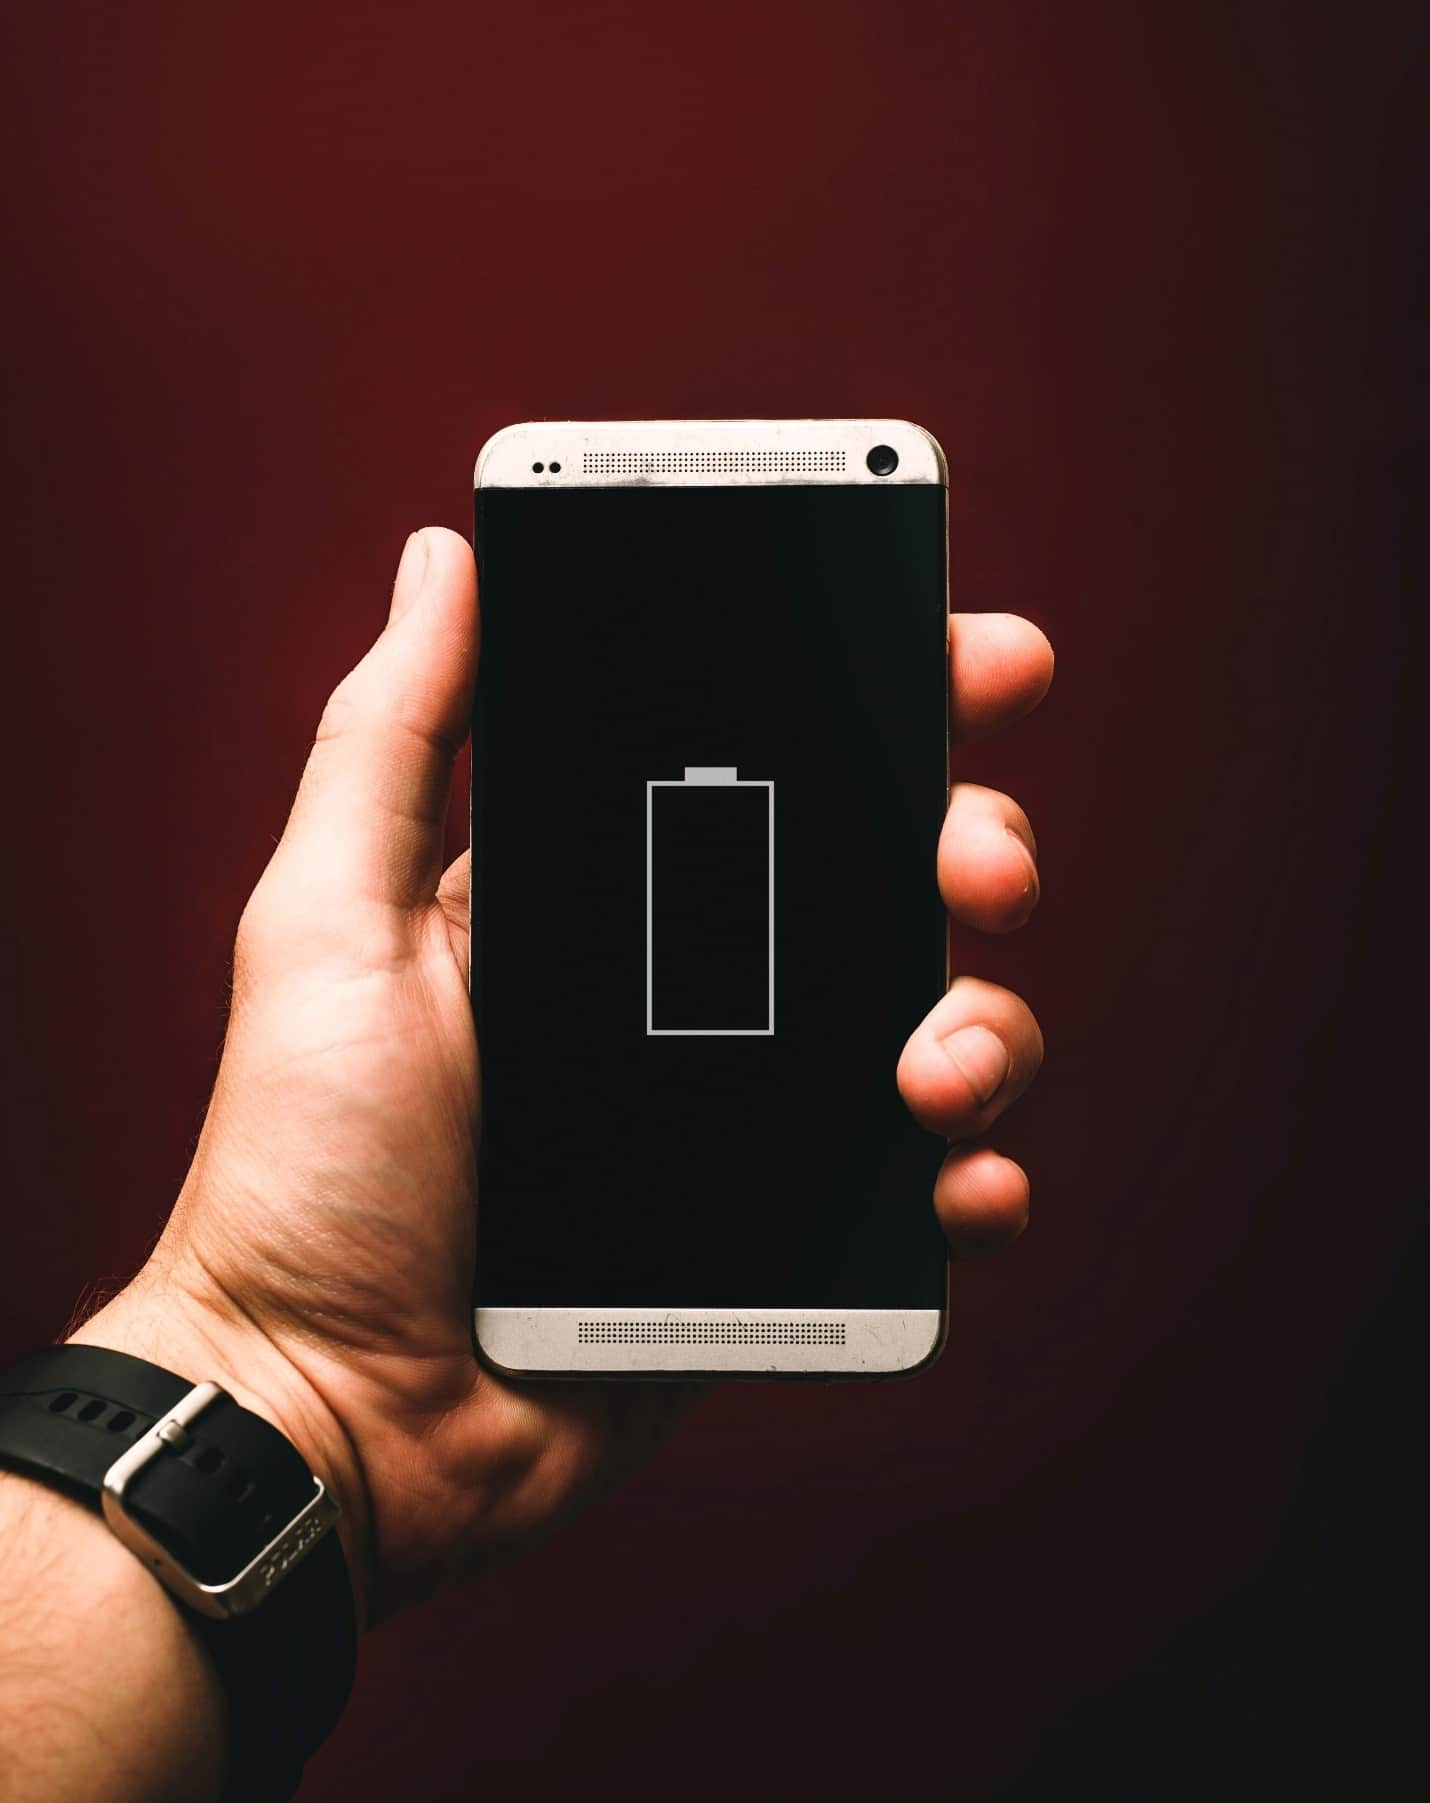 content/en-za/images/repository/isc/2020/9910/prolong-your-smartphone-battery-lifespan-1.jpg